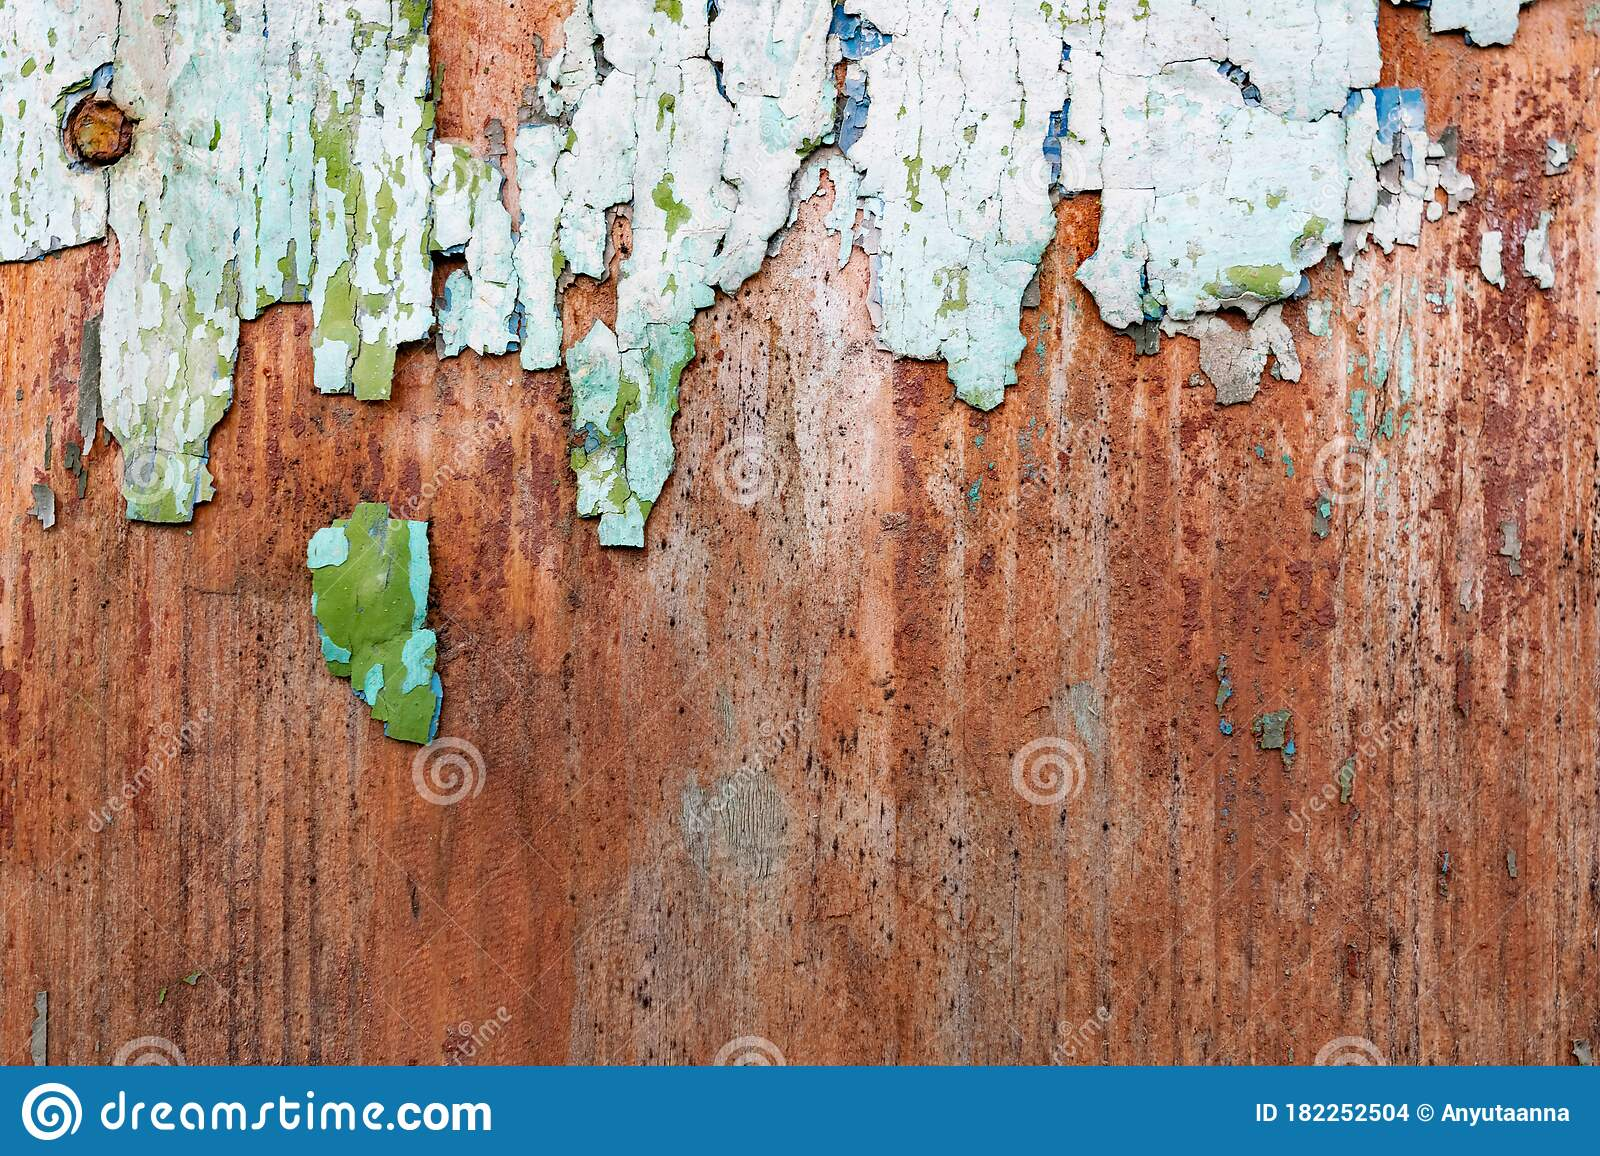 Old Wooden Background With Peeling Paint Vintage Boards With Blue And Green Coating Aquamarine Shades On Brown Stock Photo Image Of Fashion Long 182252504